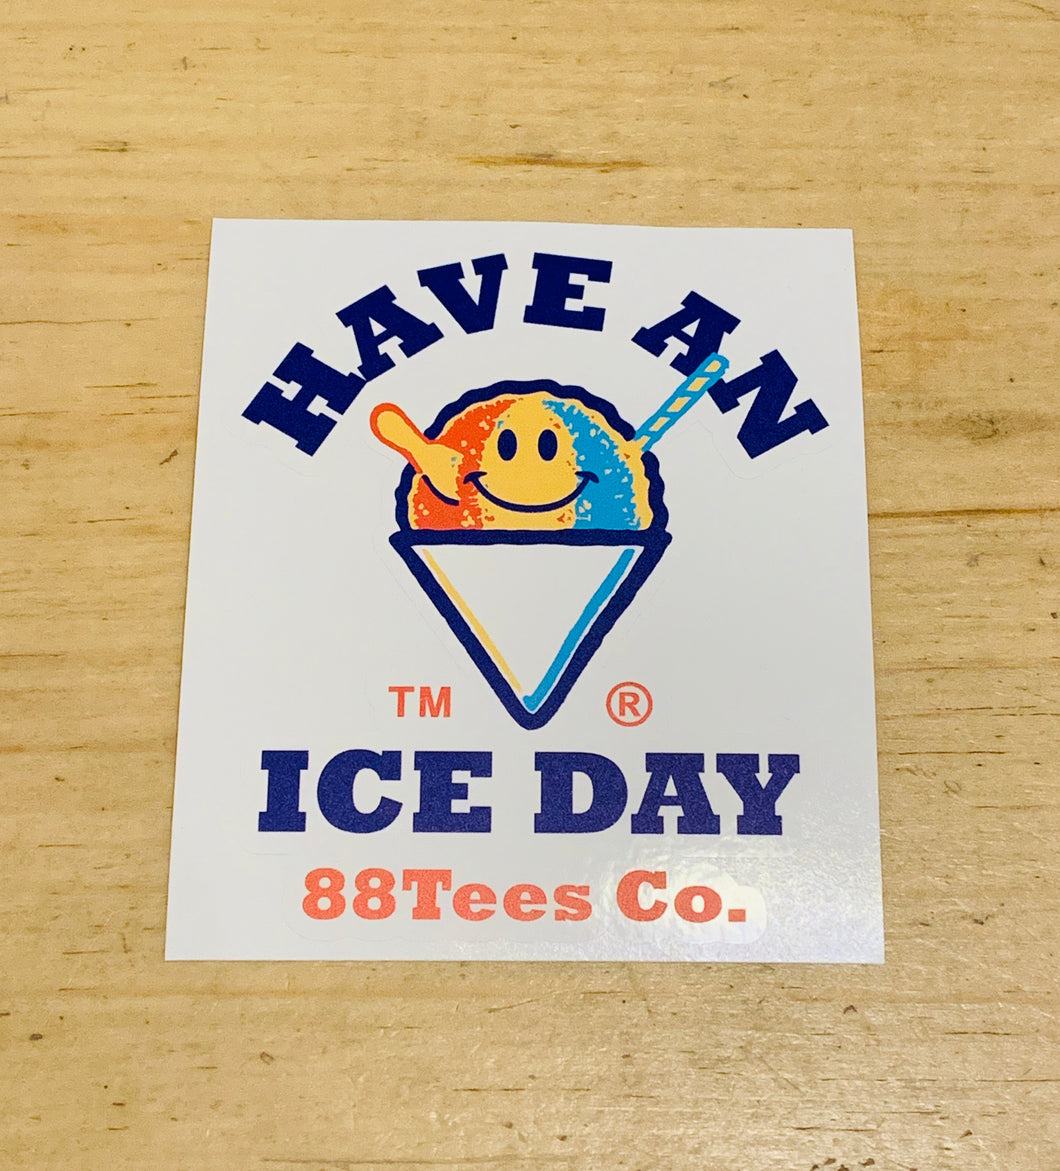 HAVE AN ICE DAY STICKER